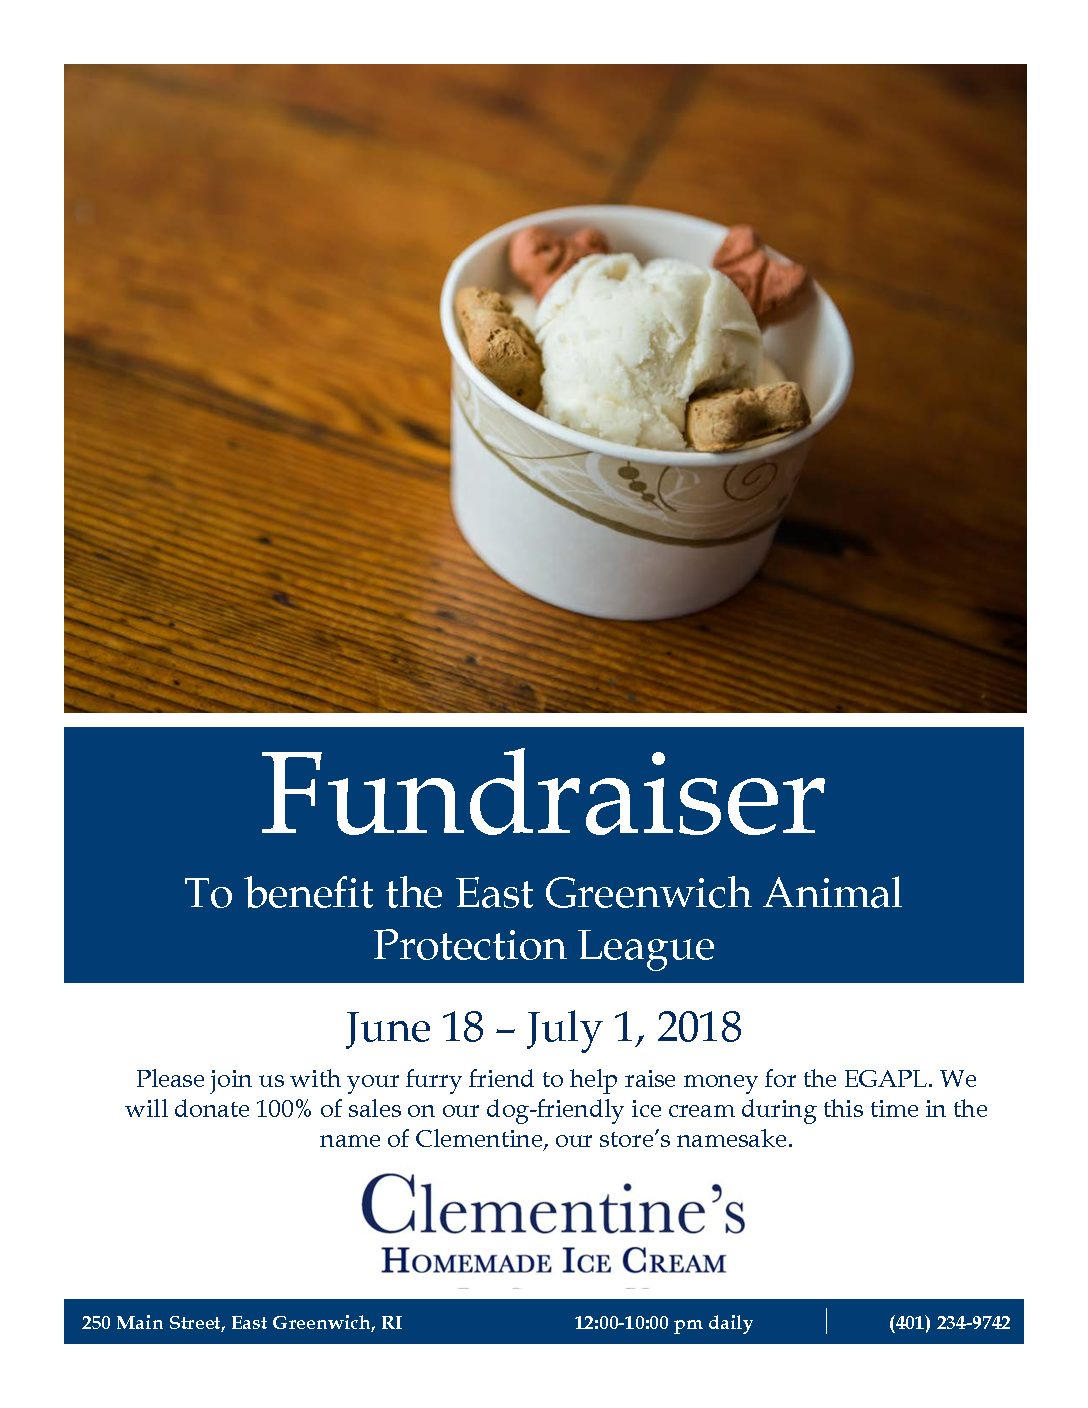 Clementines Fundraiser